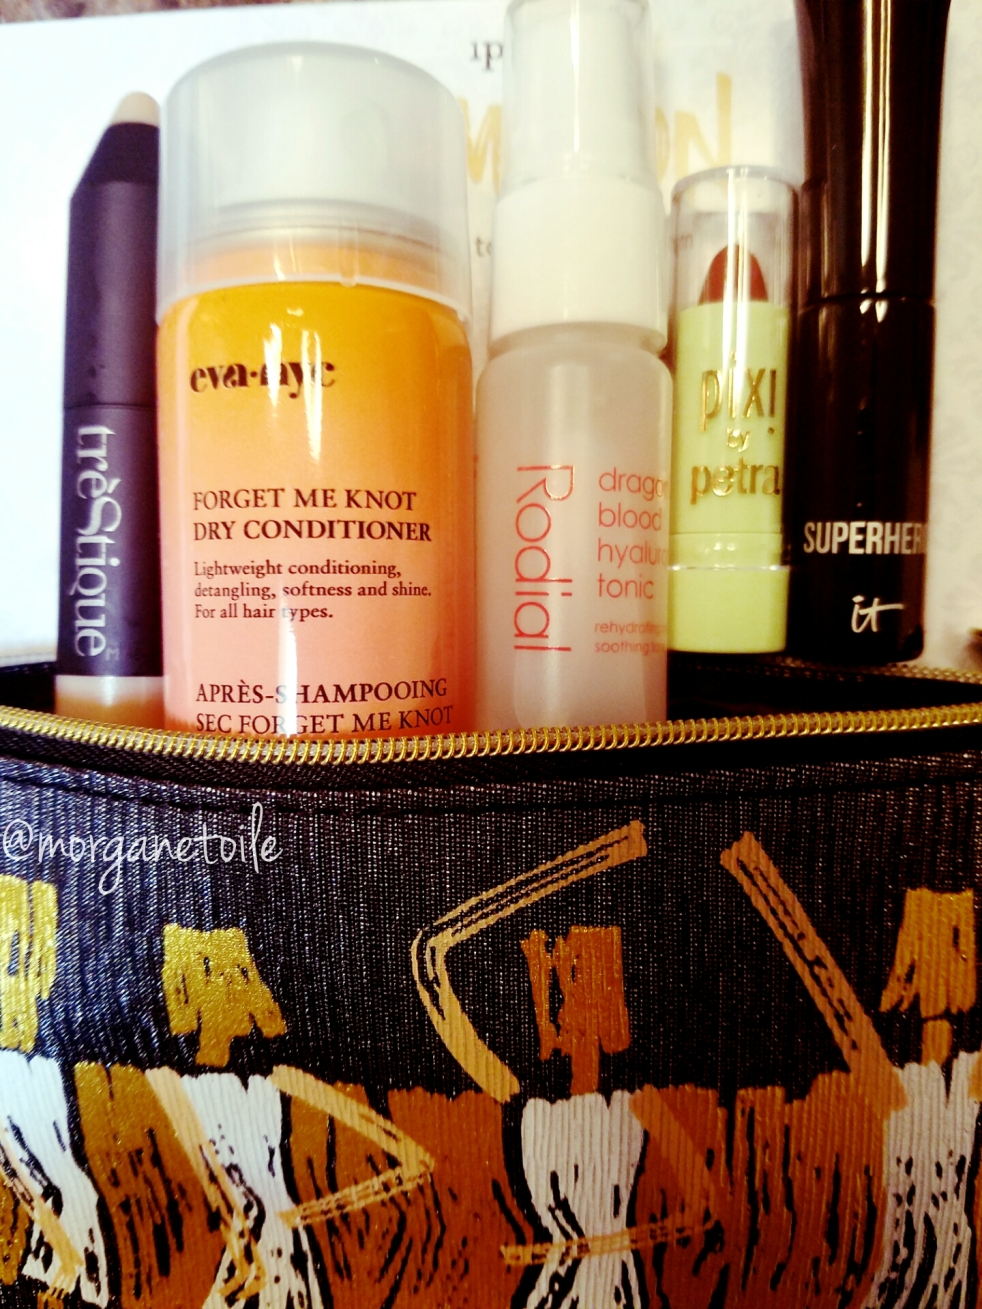 ipsy glam bag, ipsy, september glam bag, september glam bag reviews, ipsy glam bag reviews